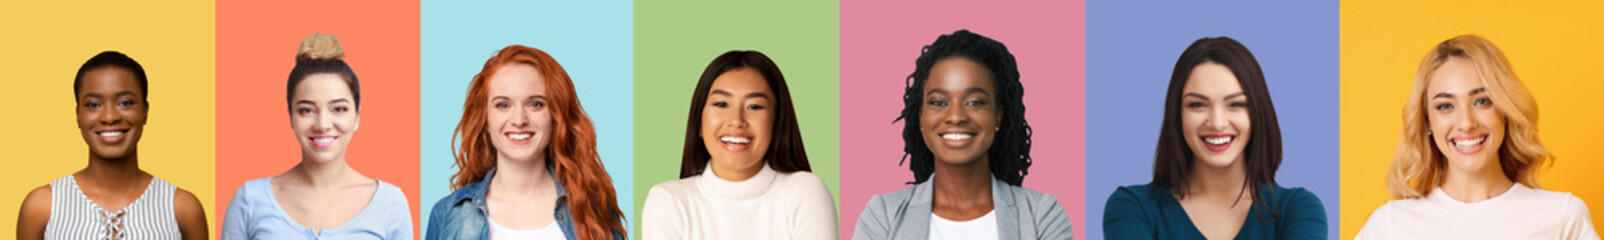 Collage of diverse multiethnic young women smiling over colorful backgrounds